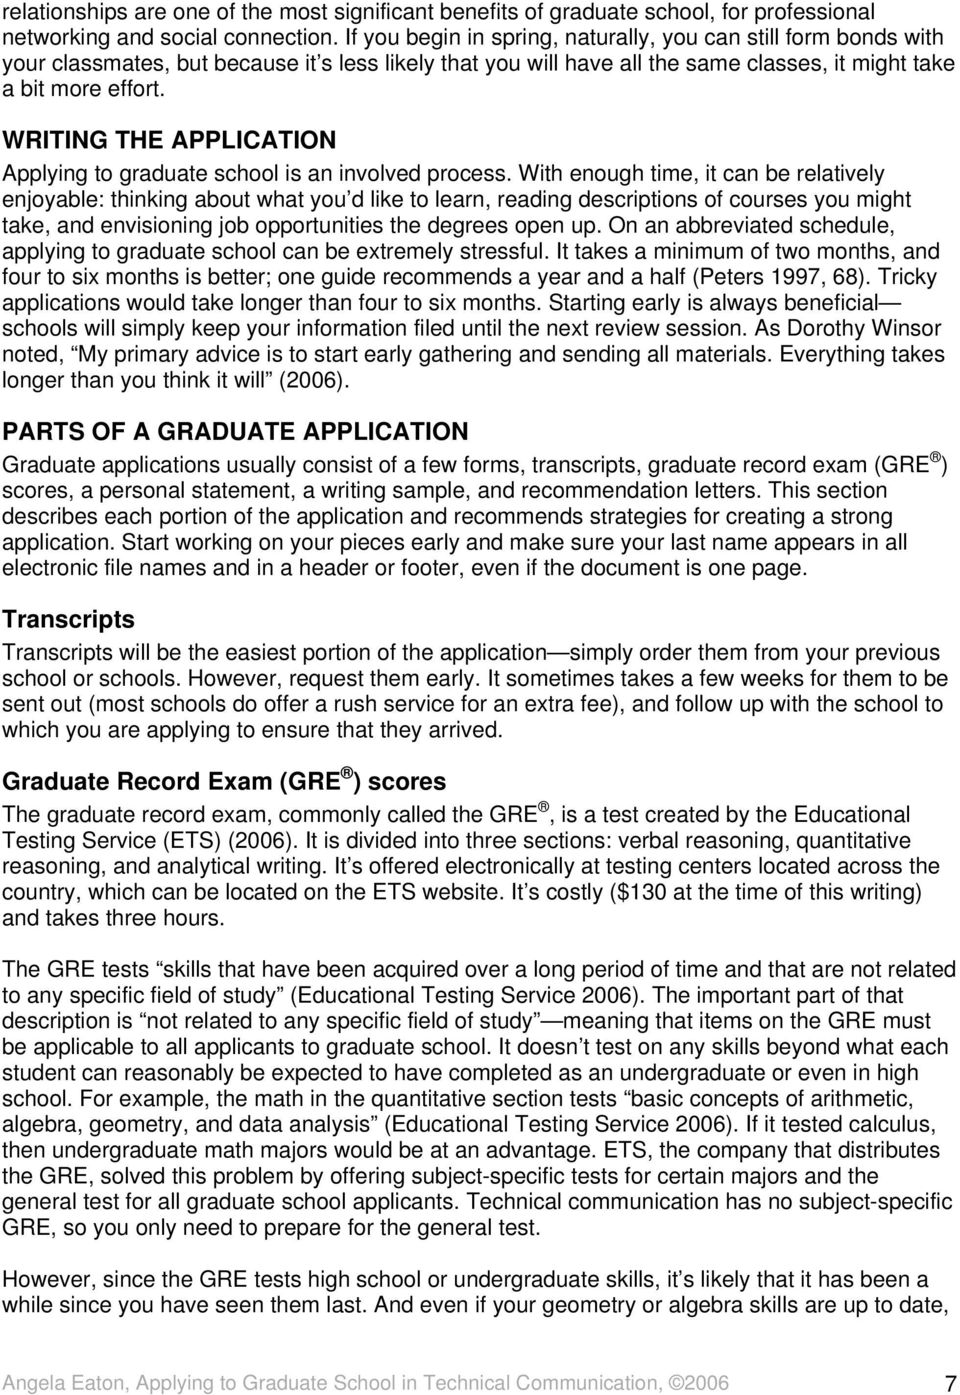 WRITING THE APPLICATION Applying to graduate school is an involved process.